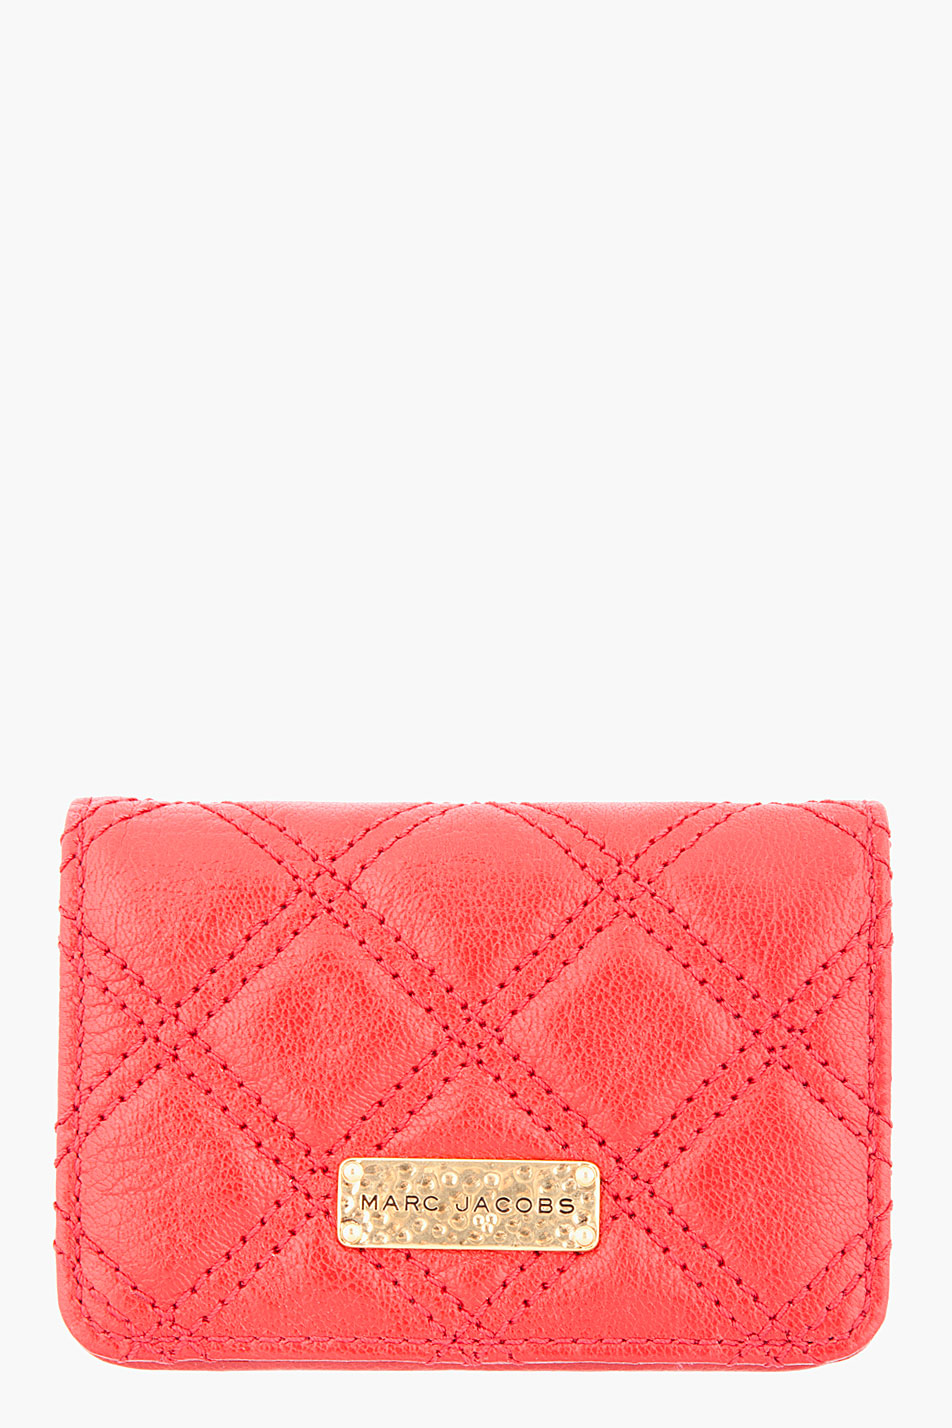 Generous Marc Jacobs Business Card Holder Ideas - Business Card ...